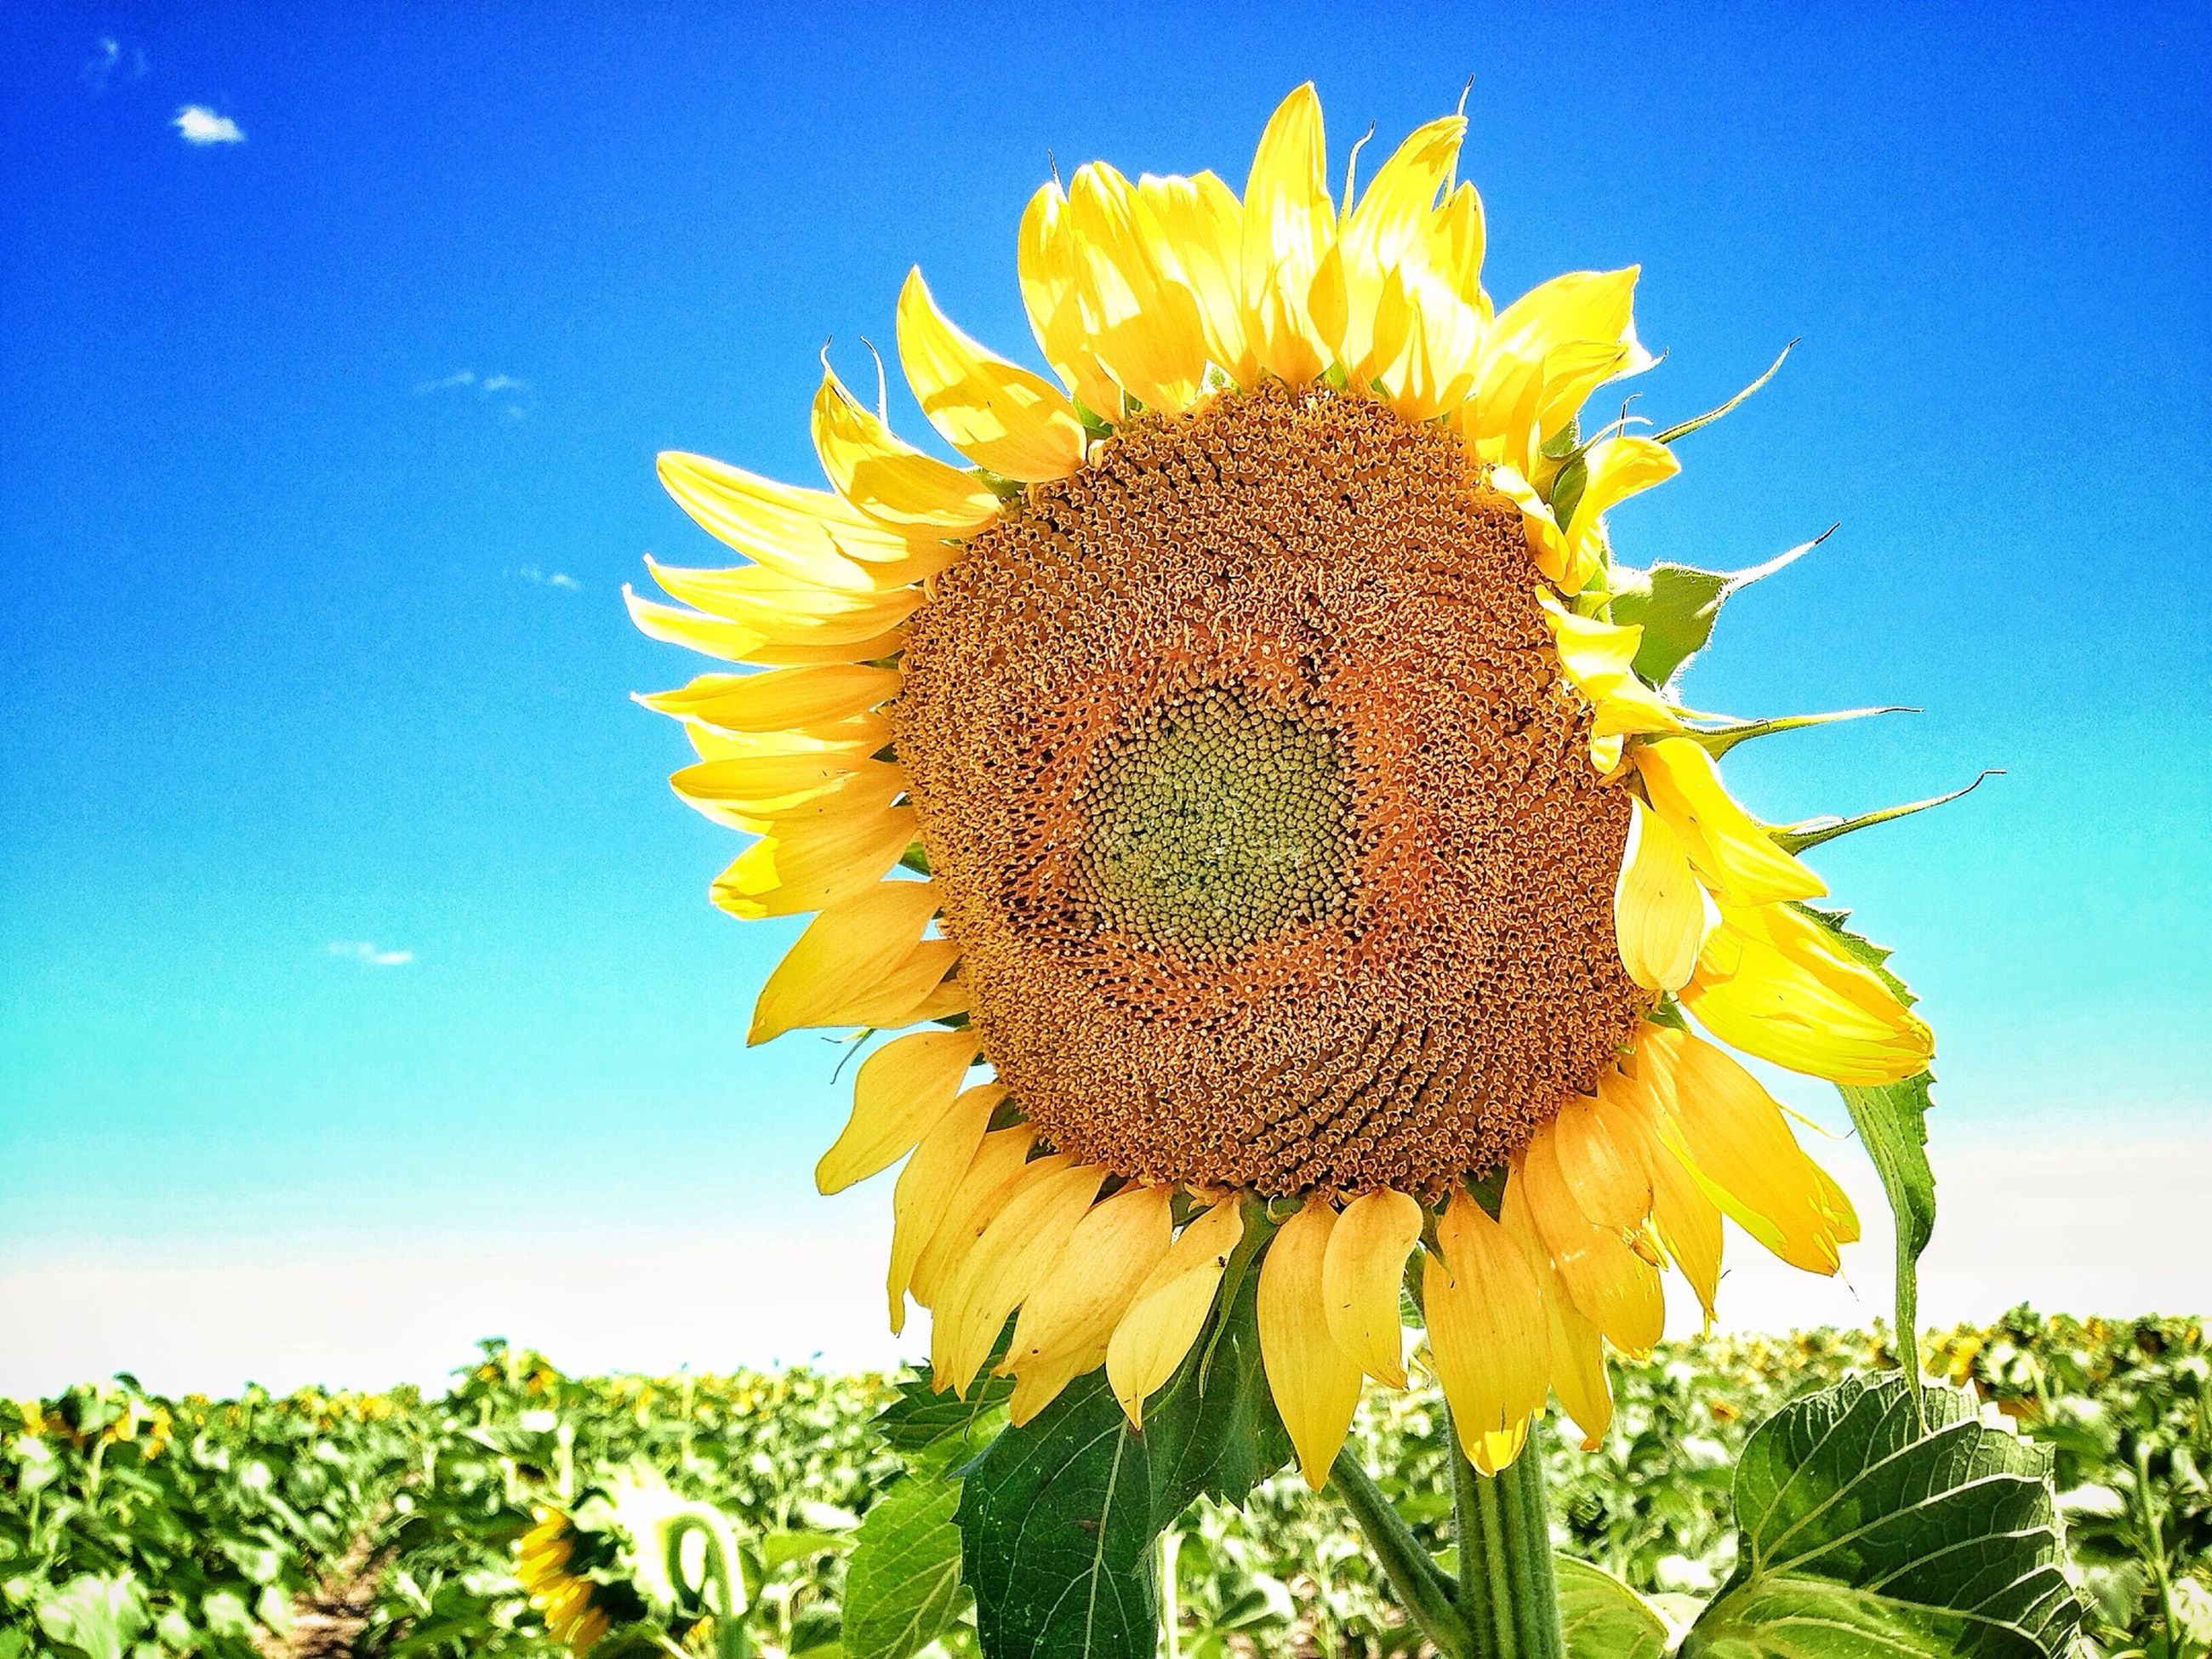 sunflower, flower, yellow, freshness, growth, flower head, fragility, beauty in nature, petal, blue, nature, clear sky, low angle view, blooming, pollen, leaf, single flower, plant, sky, close-up